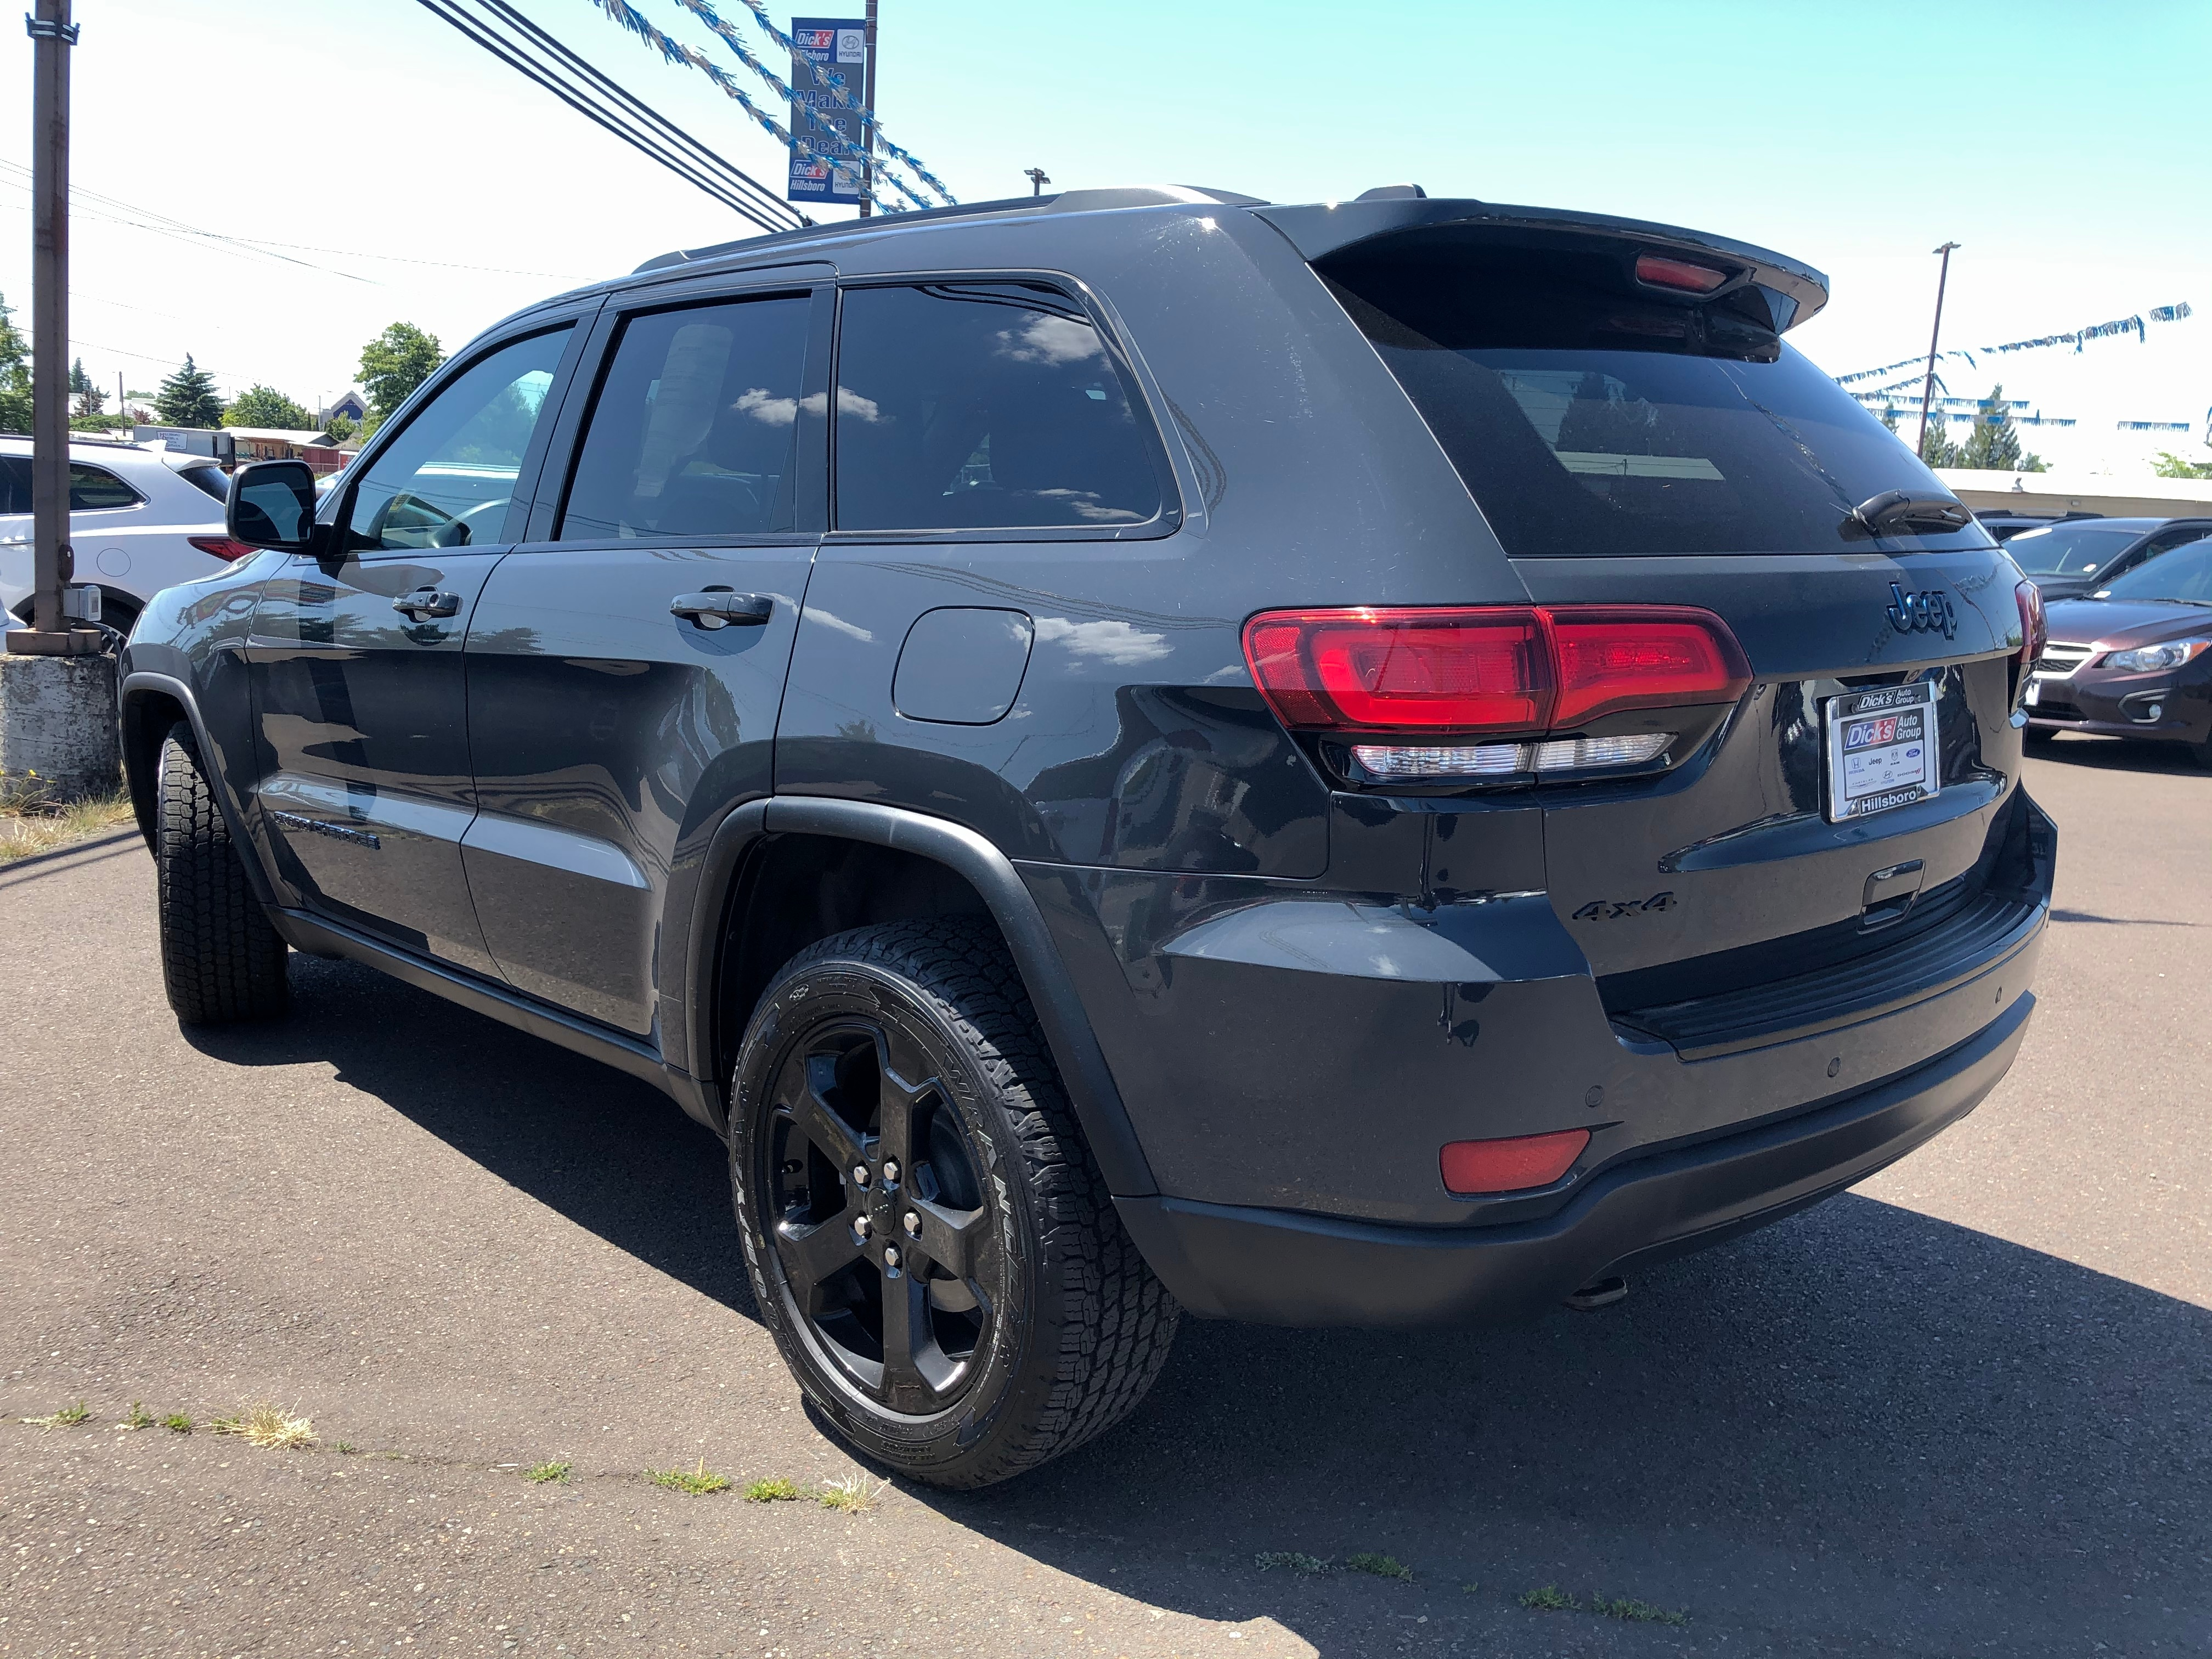 Pre-Owned 2018 Jeep Grand Cherokee Laredo 4x4